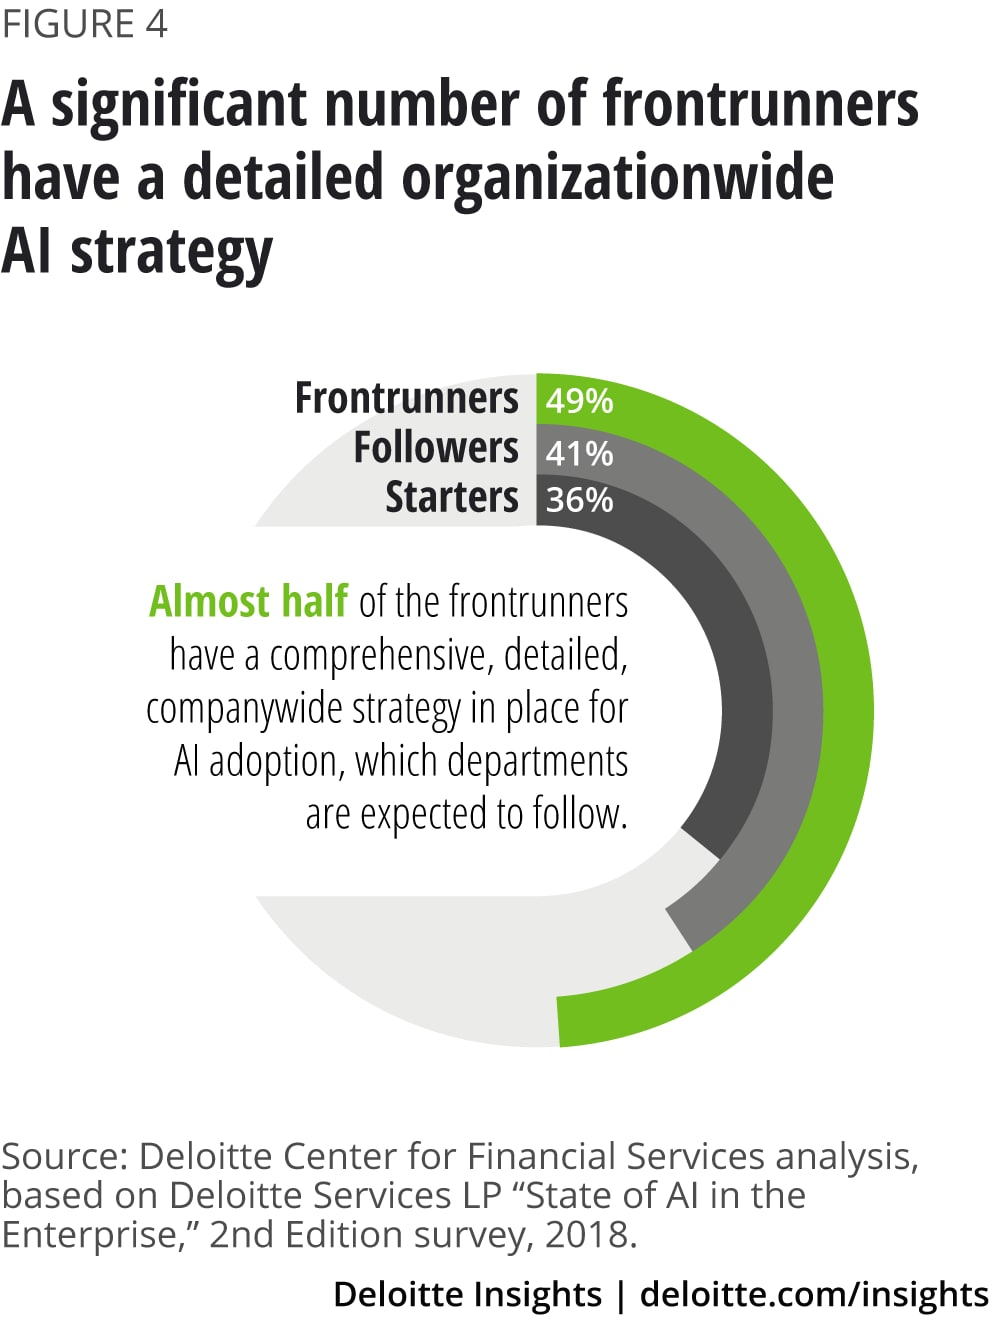 A significant number of frontrunners have a detailed organizationwide AI strategy